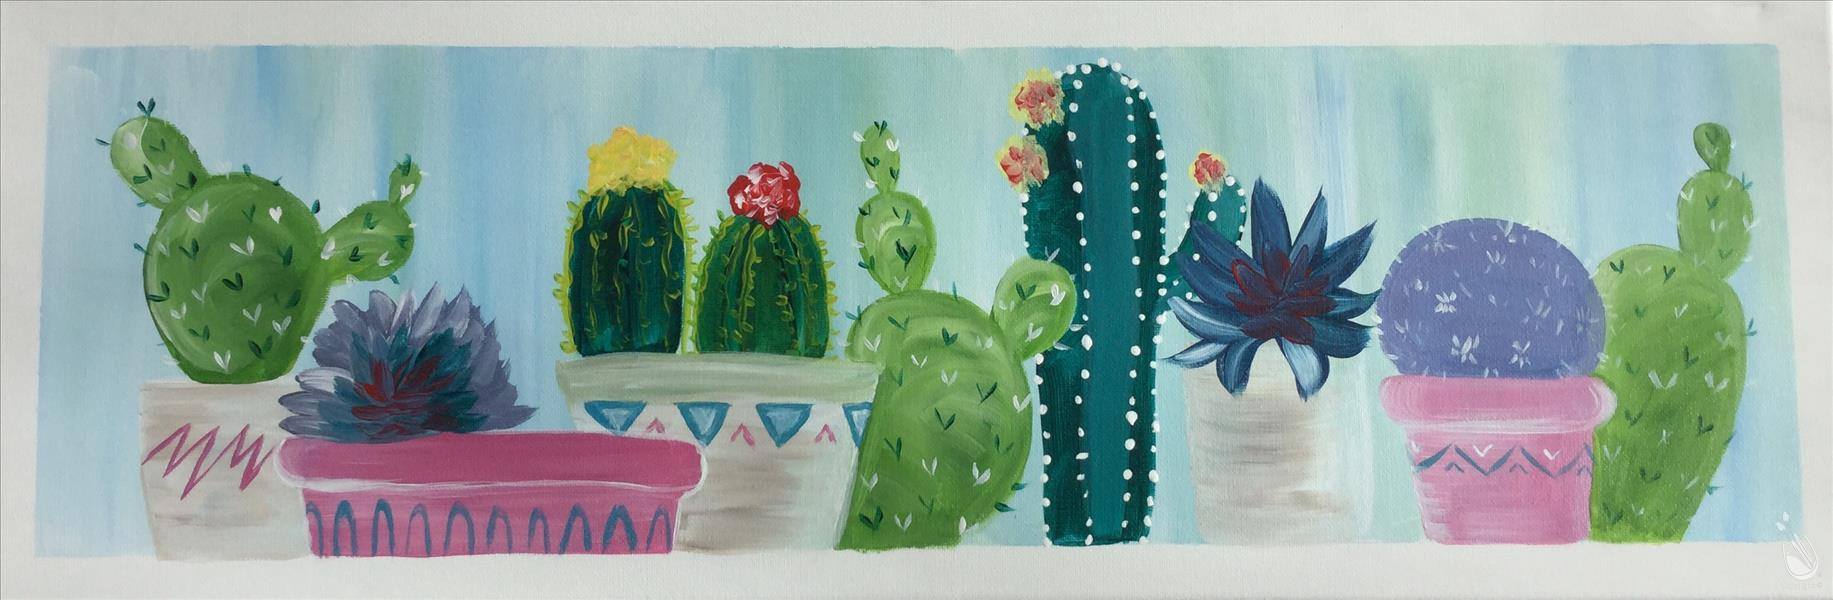 Cacti on a Shelf - In Studio Class!